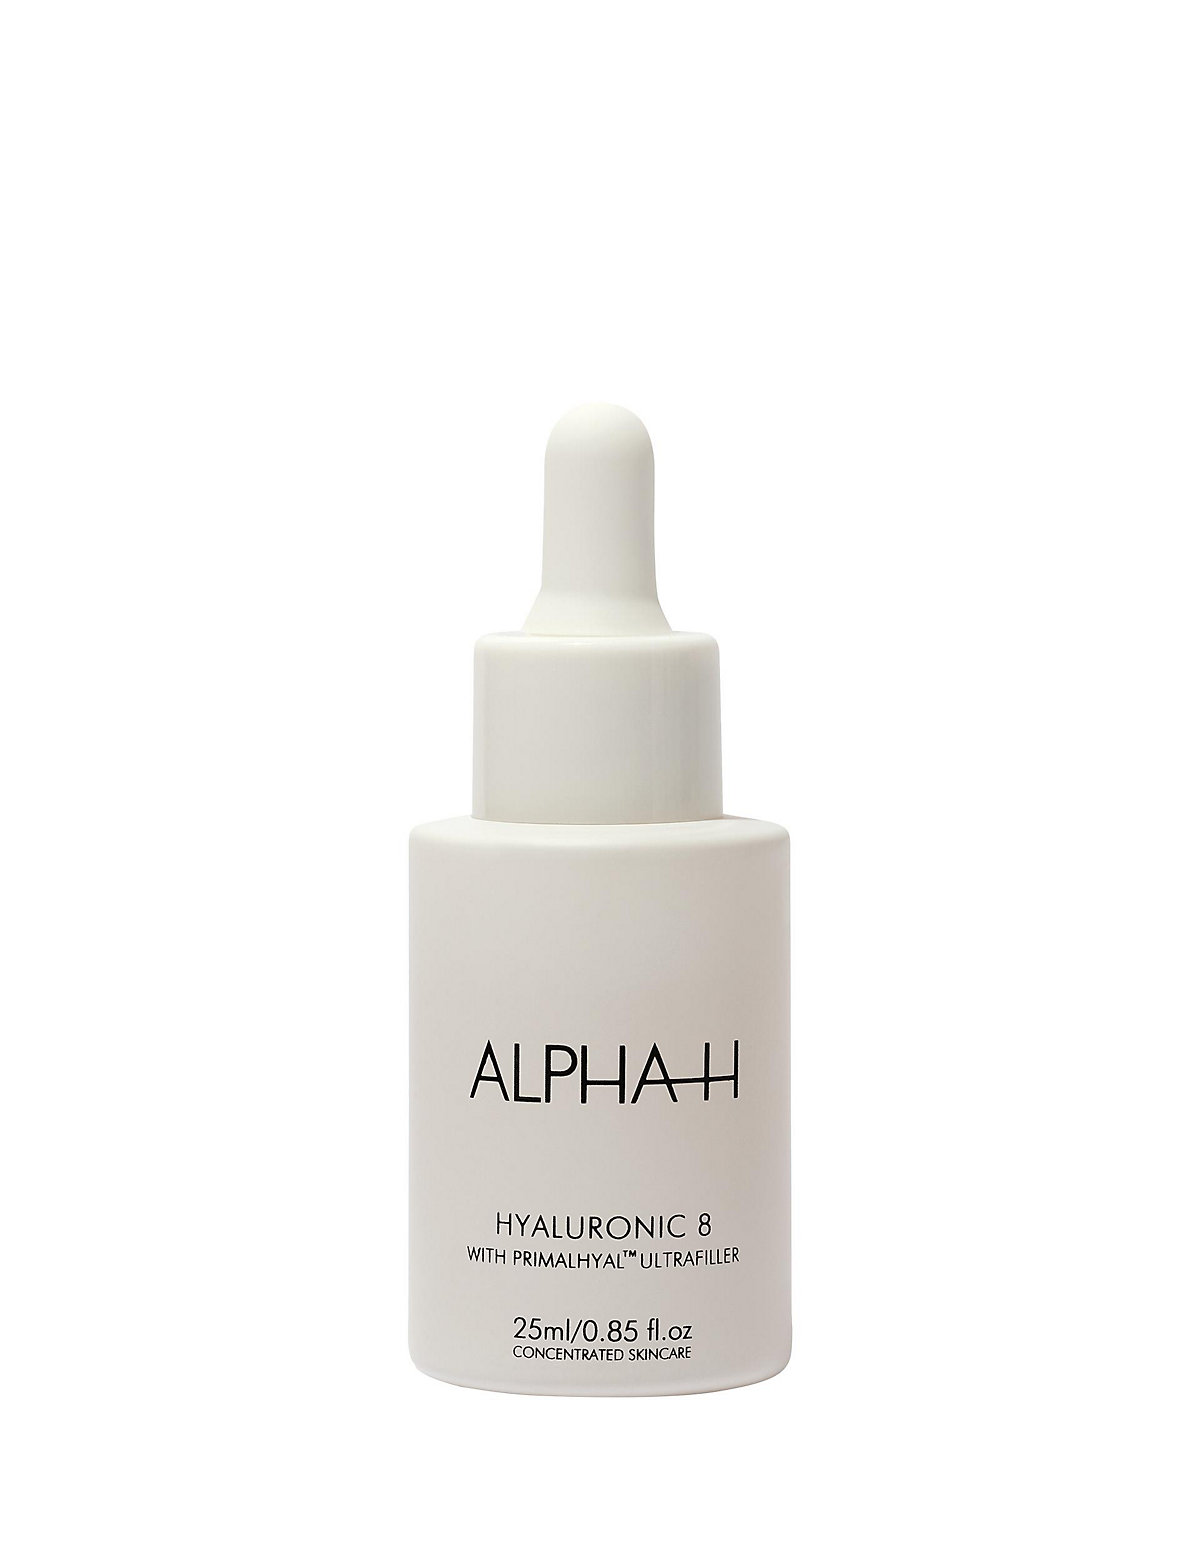 Alpha-H Hyaluronic 8 Serum with PrimalHyal Ultrafiller 25ml